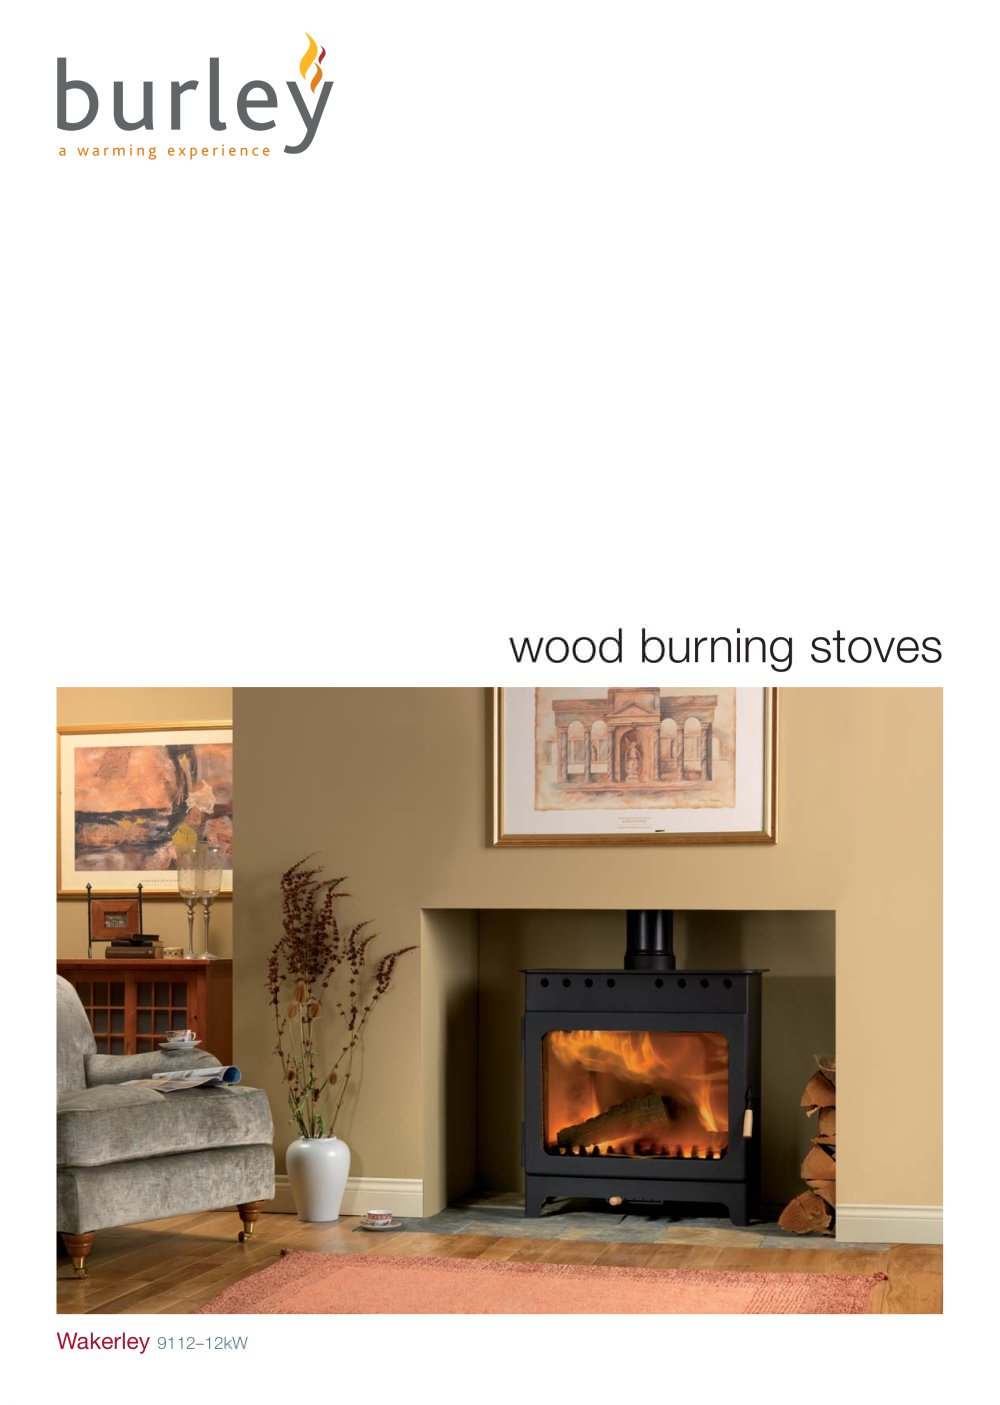 wood burning stoves - Burley - PDF Catalogues | Documentation ...